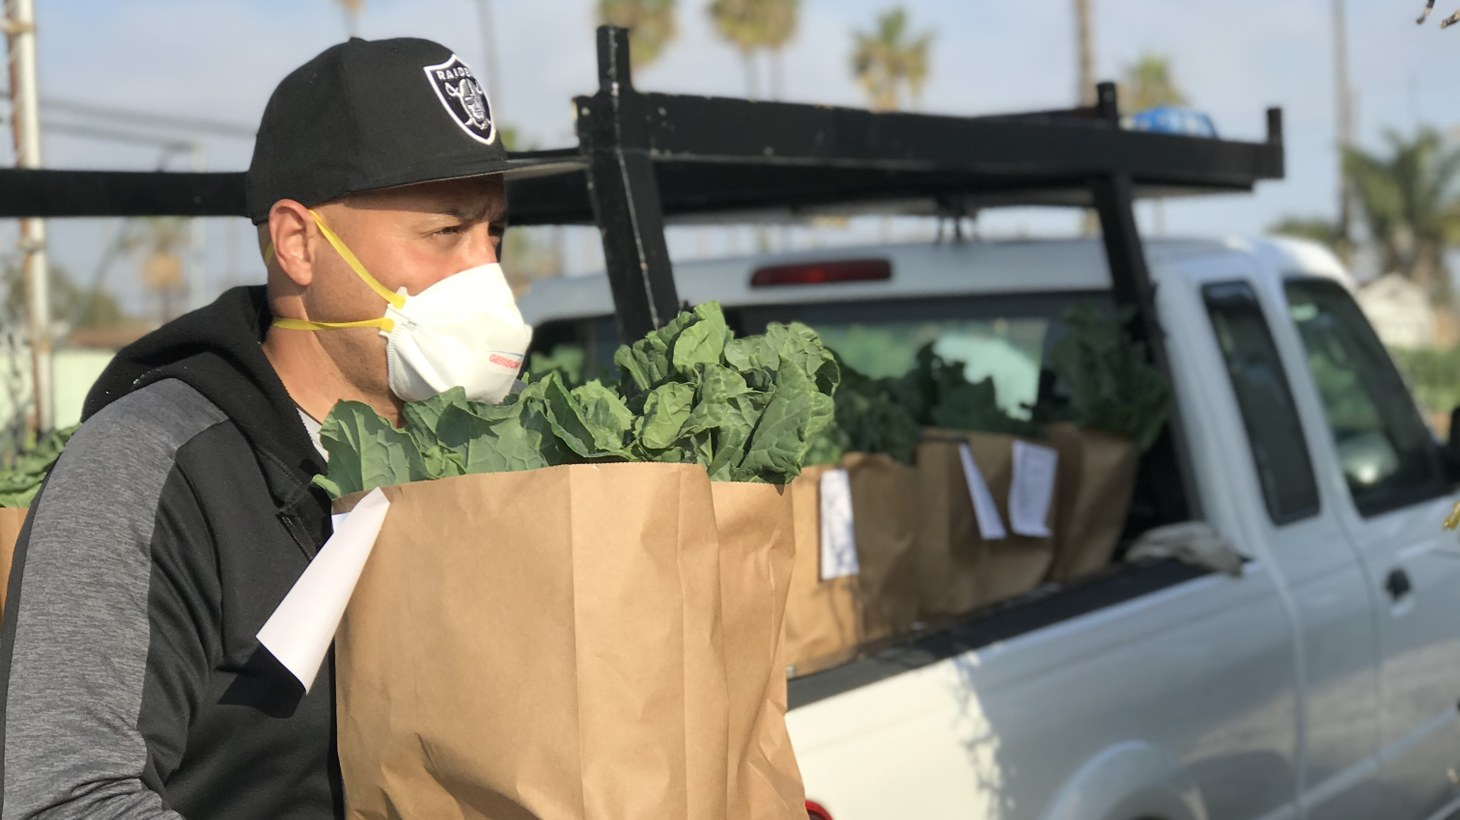 Through ALMA Backyard Farms, Richard D. Garcia works with the formerly incarcerated, teaching skills in farming and distribution.